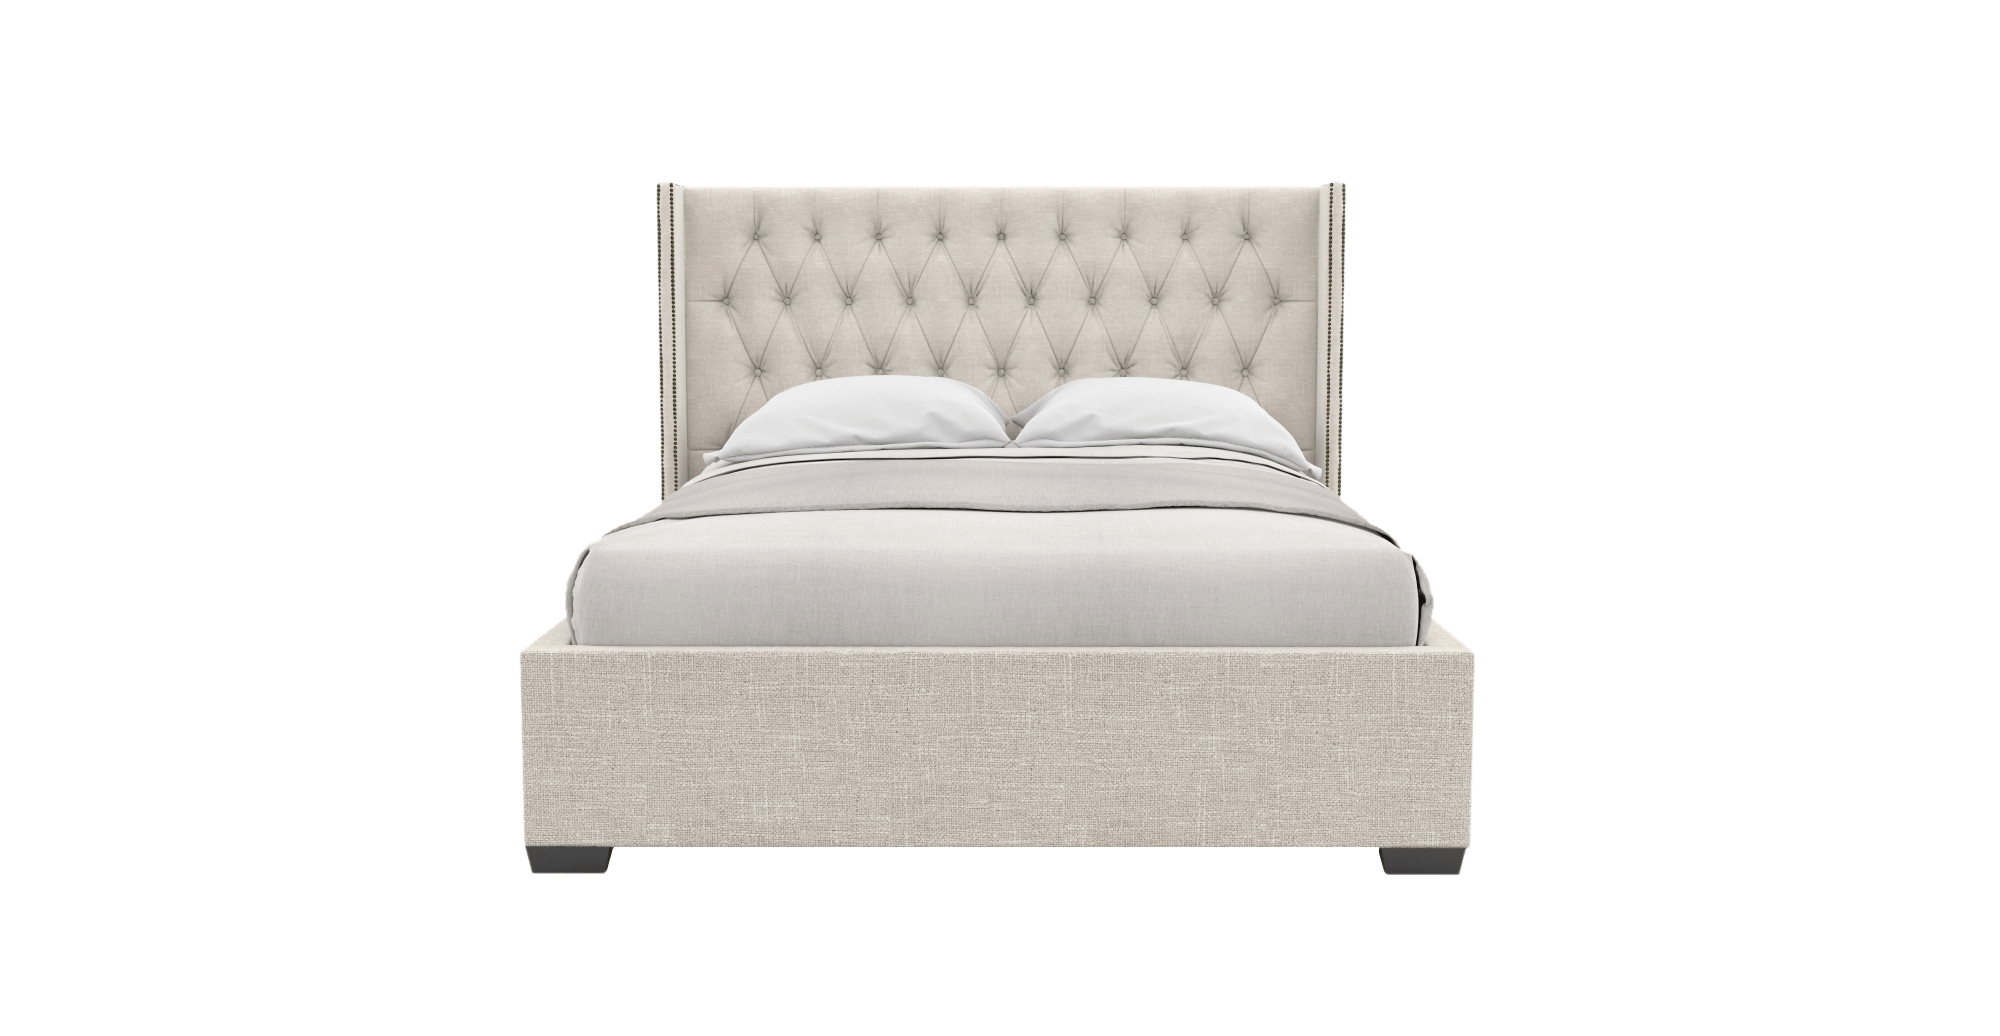 Gas Lift Queen Beds Buy Stella Gas Lift Queen Size Bed Frame Online In